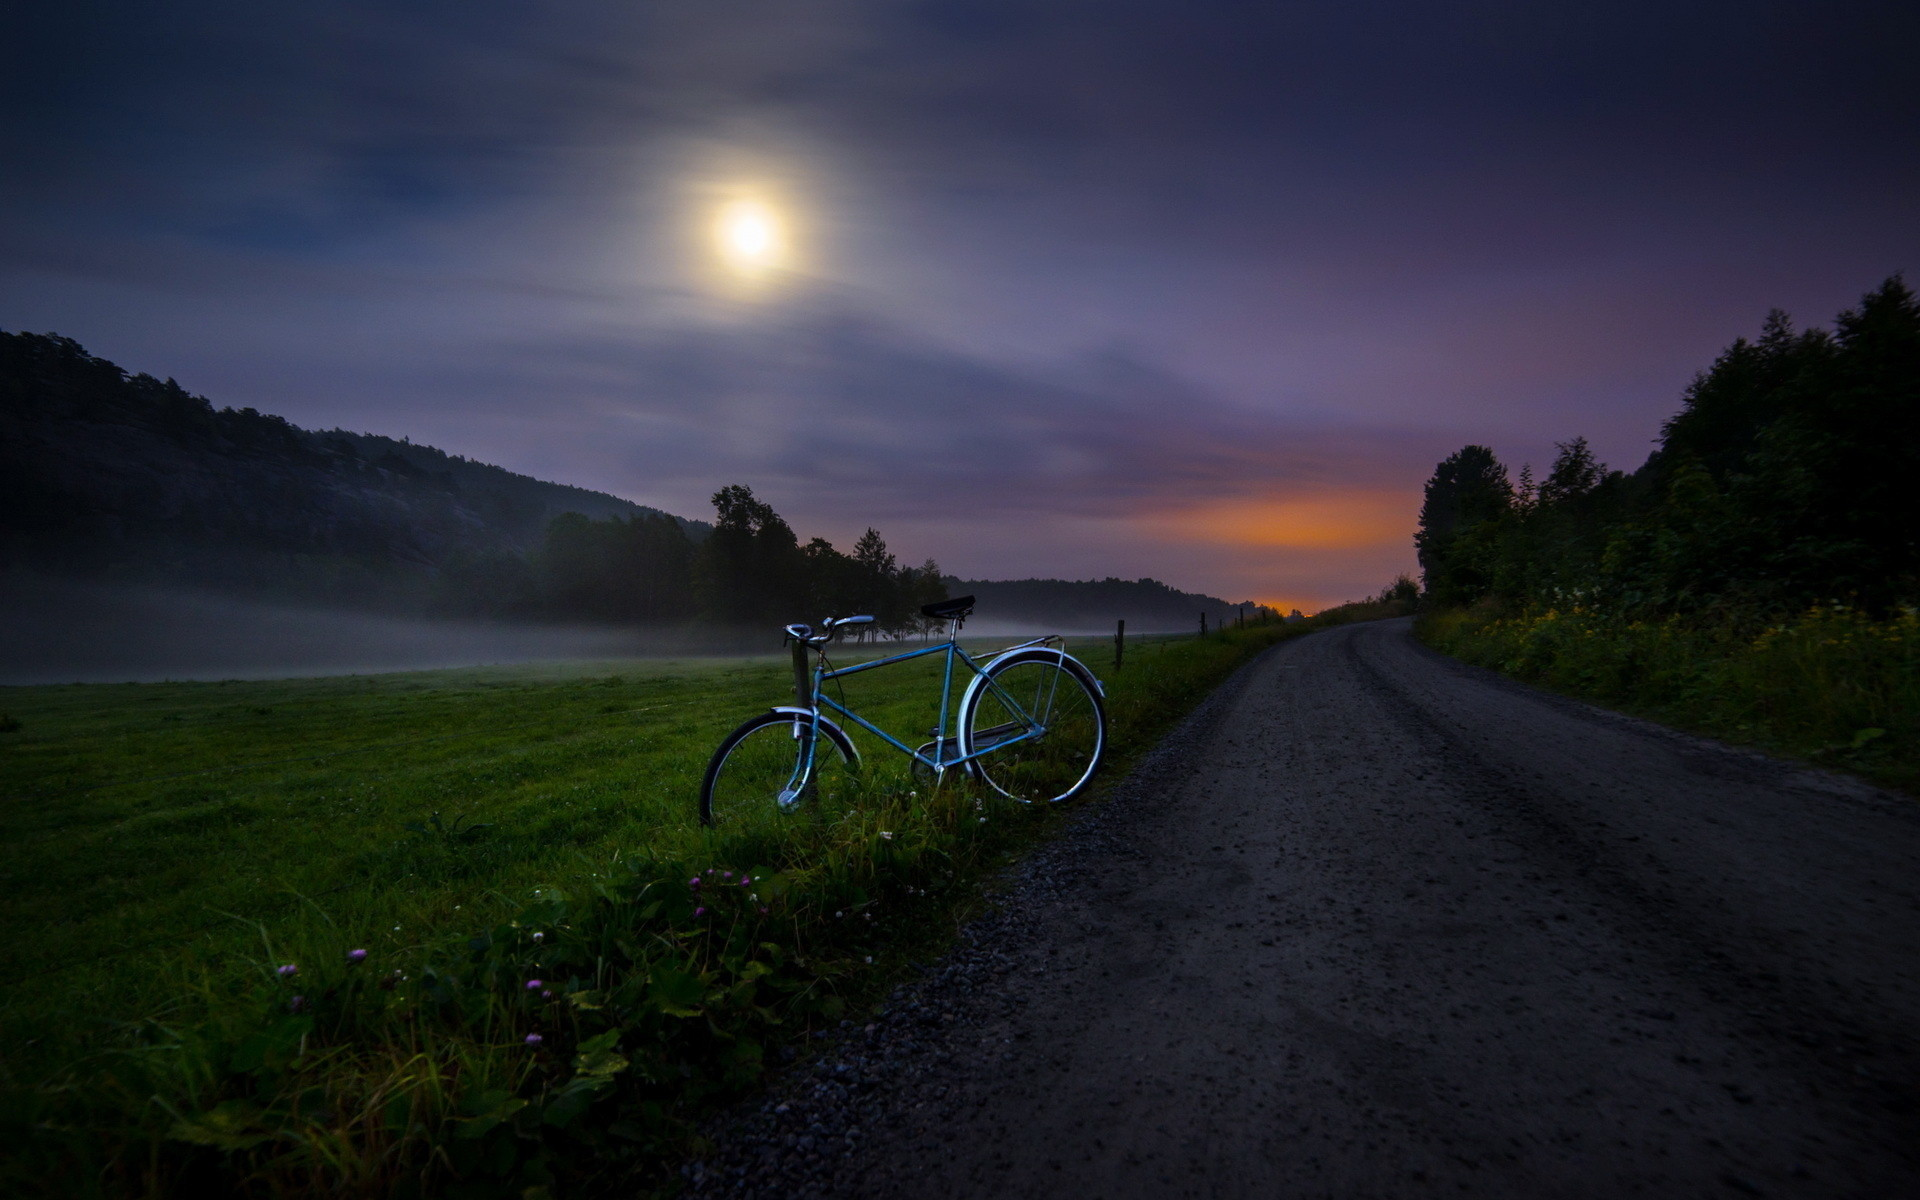 Bike, country road, night, clouds and fog: